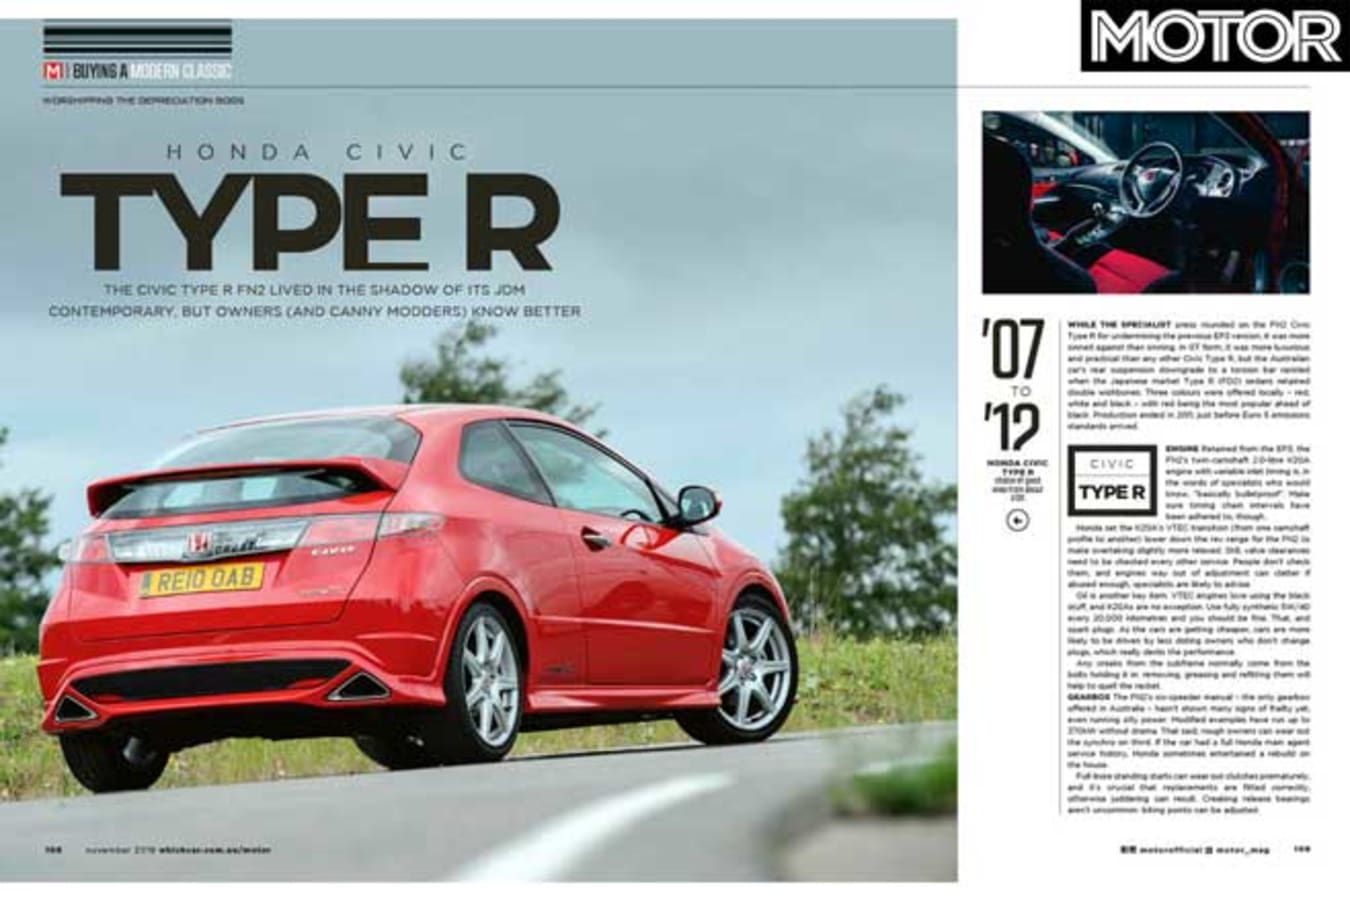 MOTOR Magazine November 2019 Issue Preview Used Car Type R Buyer Guide Jpg